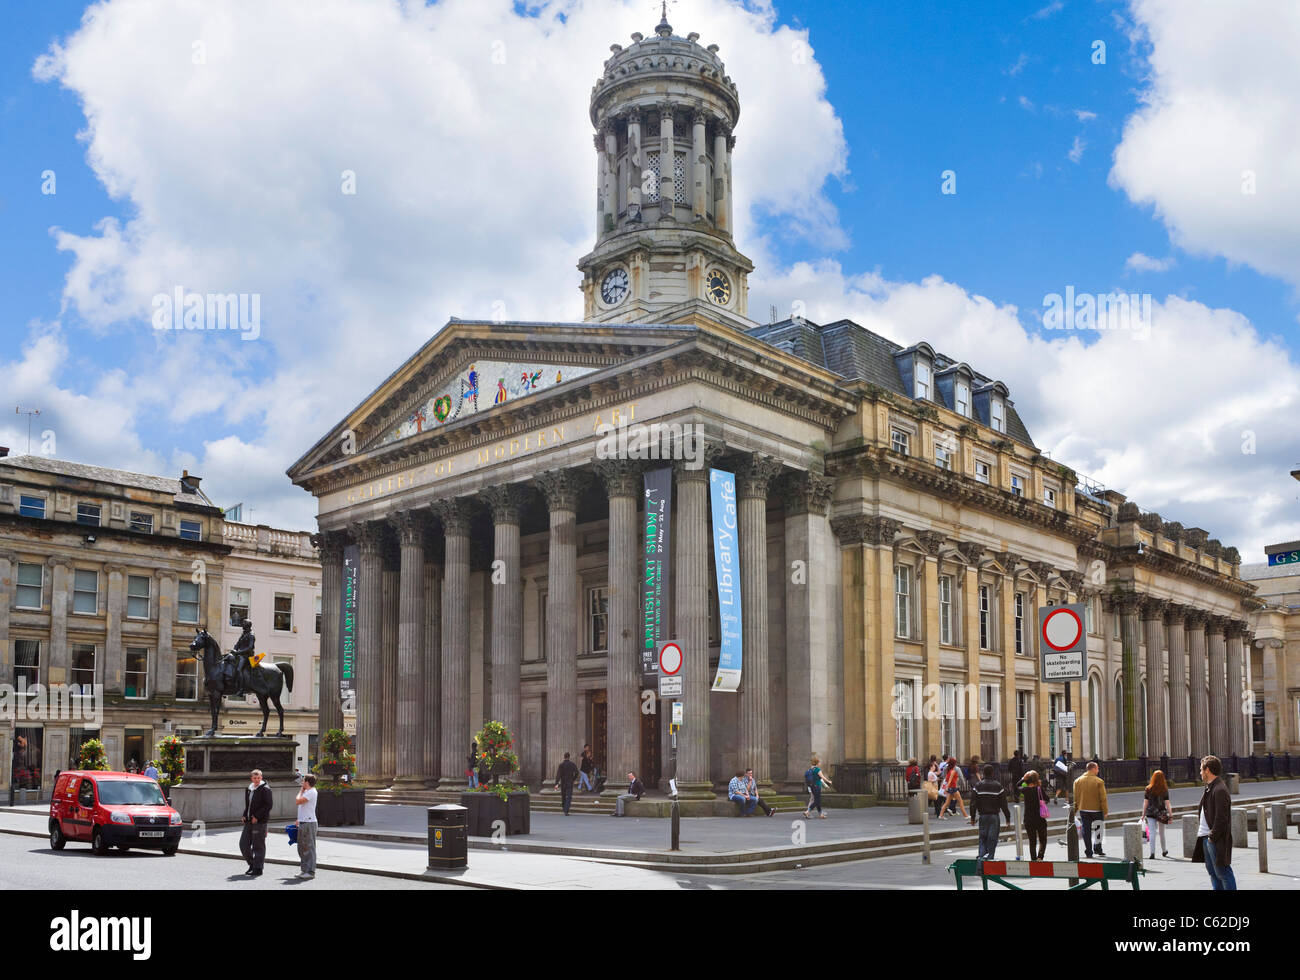 The Gallery of Modern Art, Royal Exchange Square, Merchant City, Glasgow, Scotland, UK - Stock Image